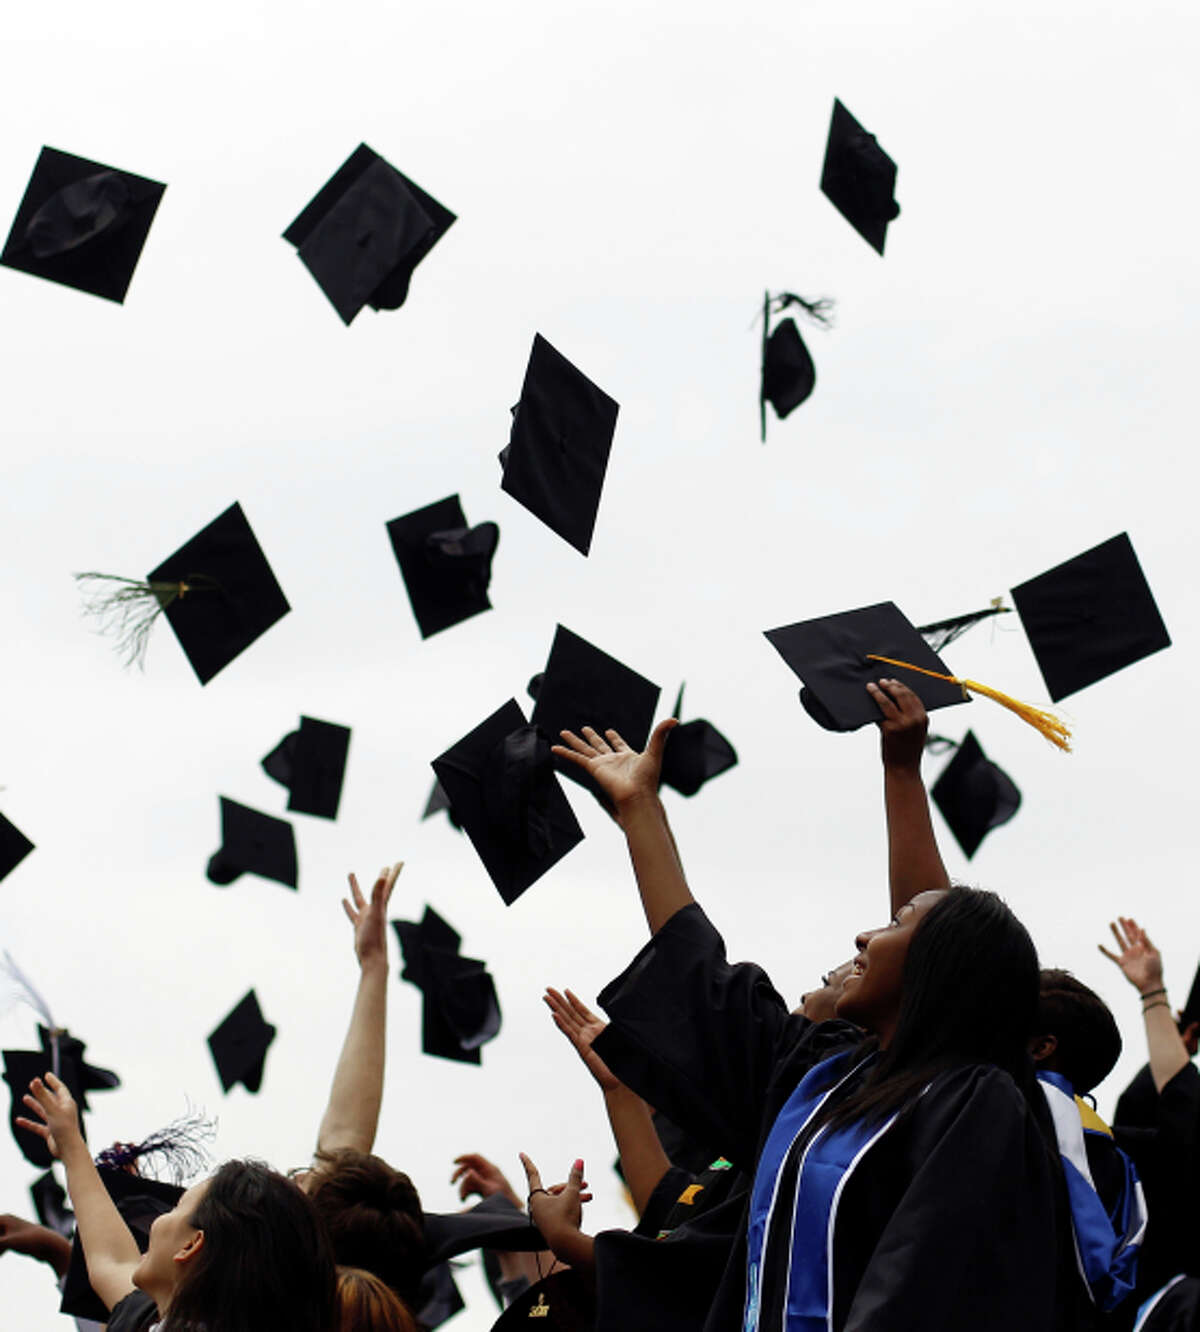 In this May 20, 2011, file photo, graduates from various institutions toss their hats in the air in Philadelphia. Many graduatues are burried in student loans, but Joe Mihalic, a business school graduate paid off $90k in student loans in 7 months and blogged about his experience at NoMoreHarvardDebt.com. (AP Photo/Matt Rourke, File)